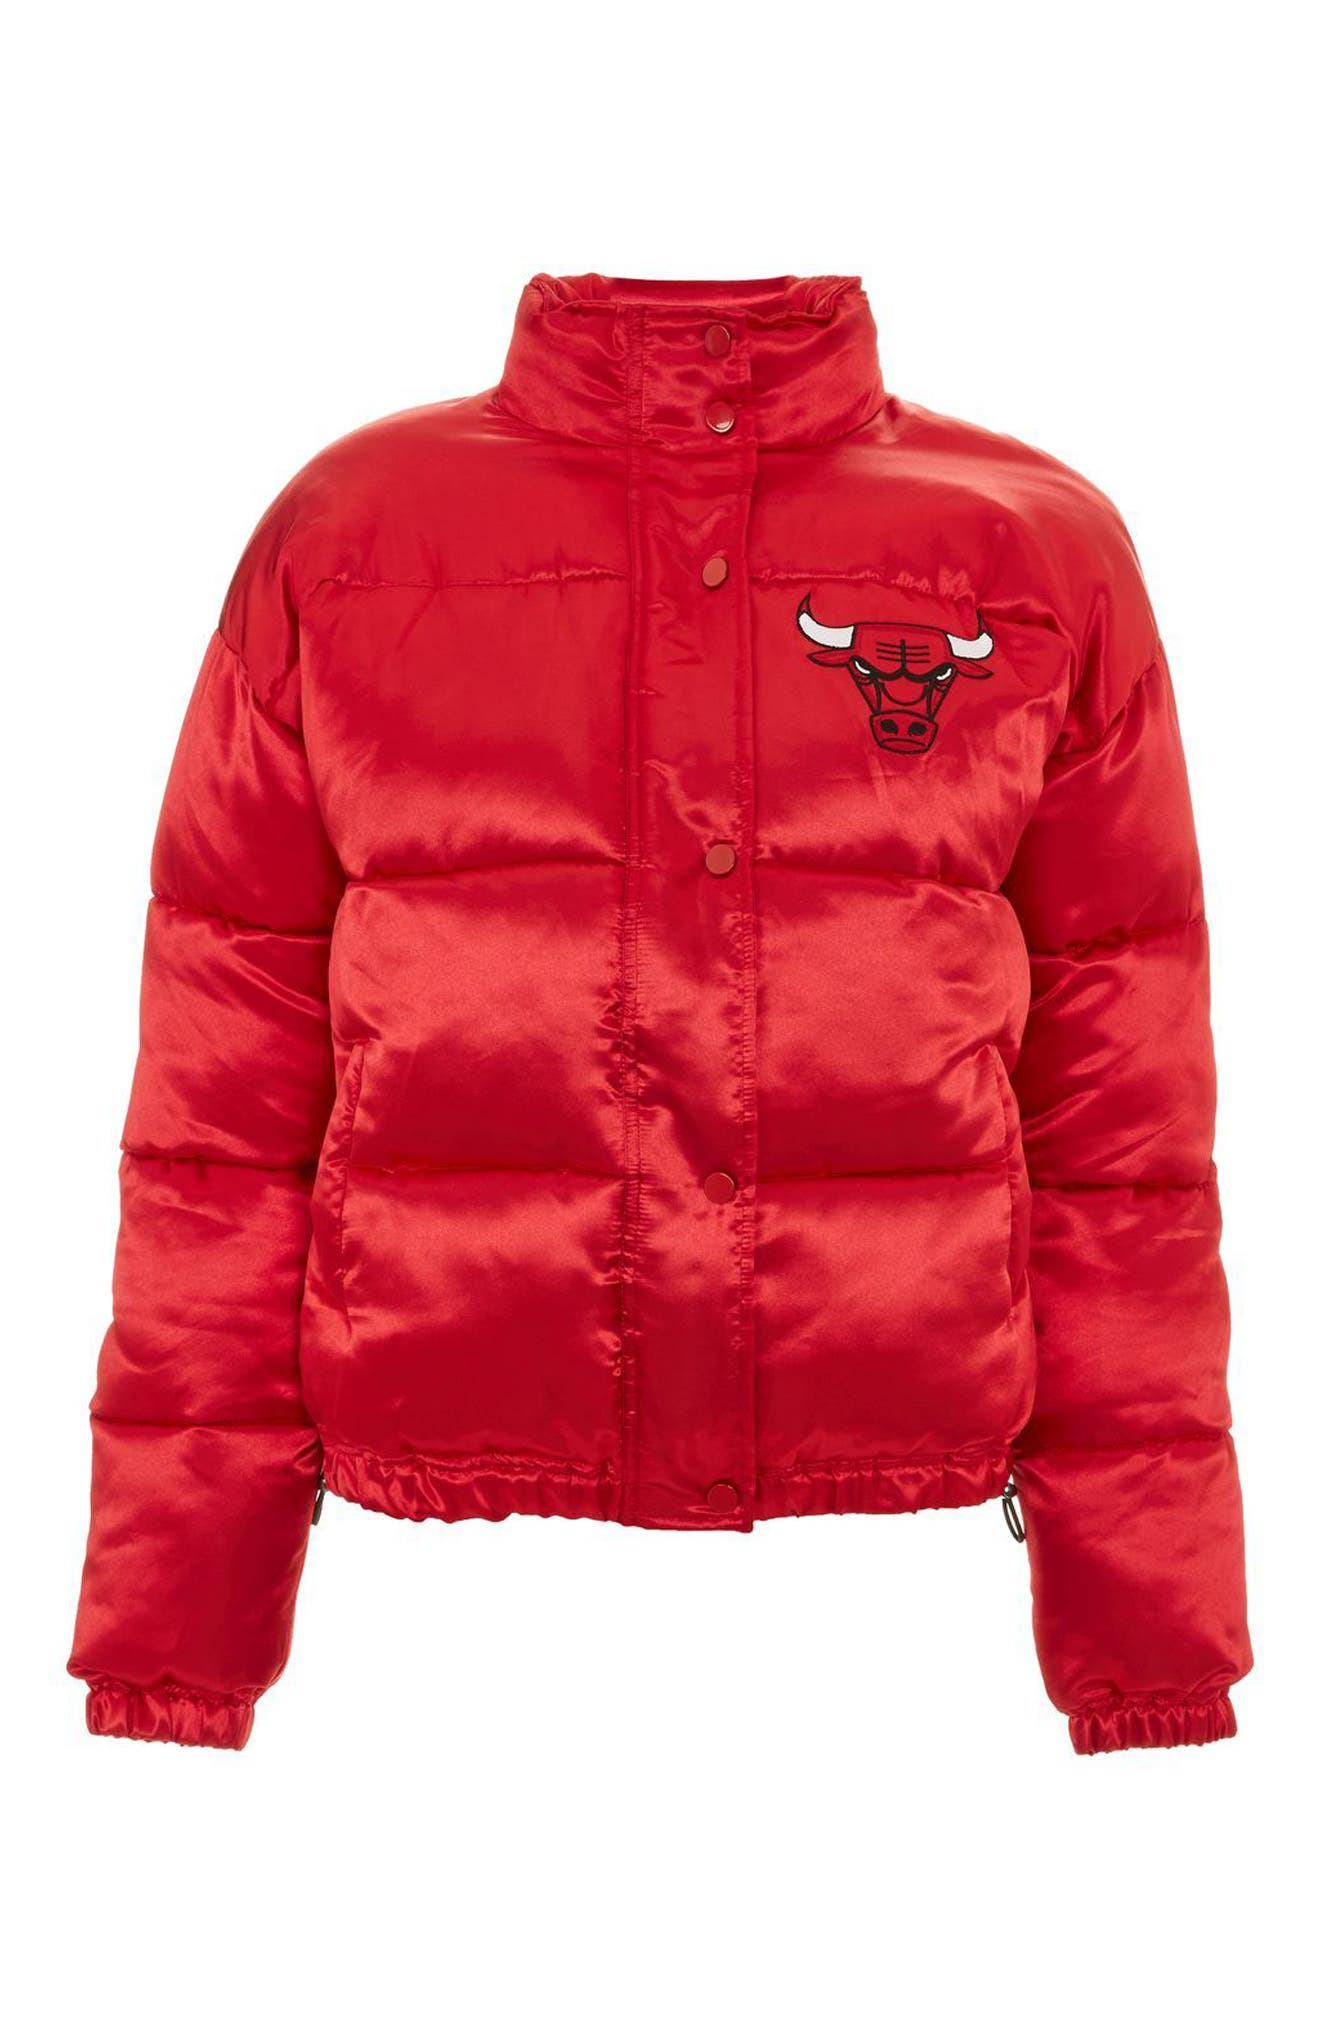 x UNK Chicago Bulls Puffer Jacket,                             Main thumbnail 1, color,                             Red